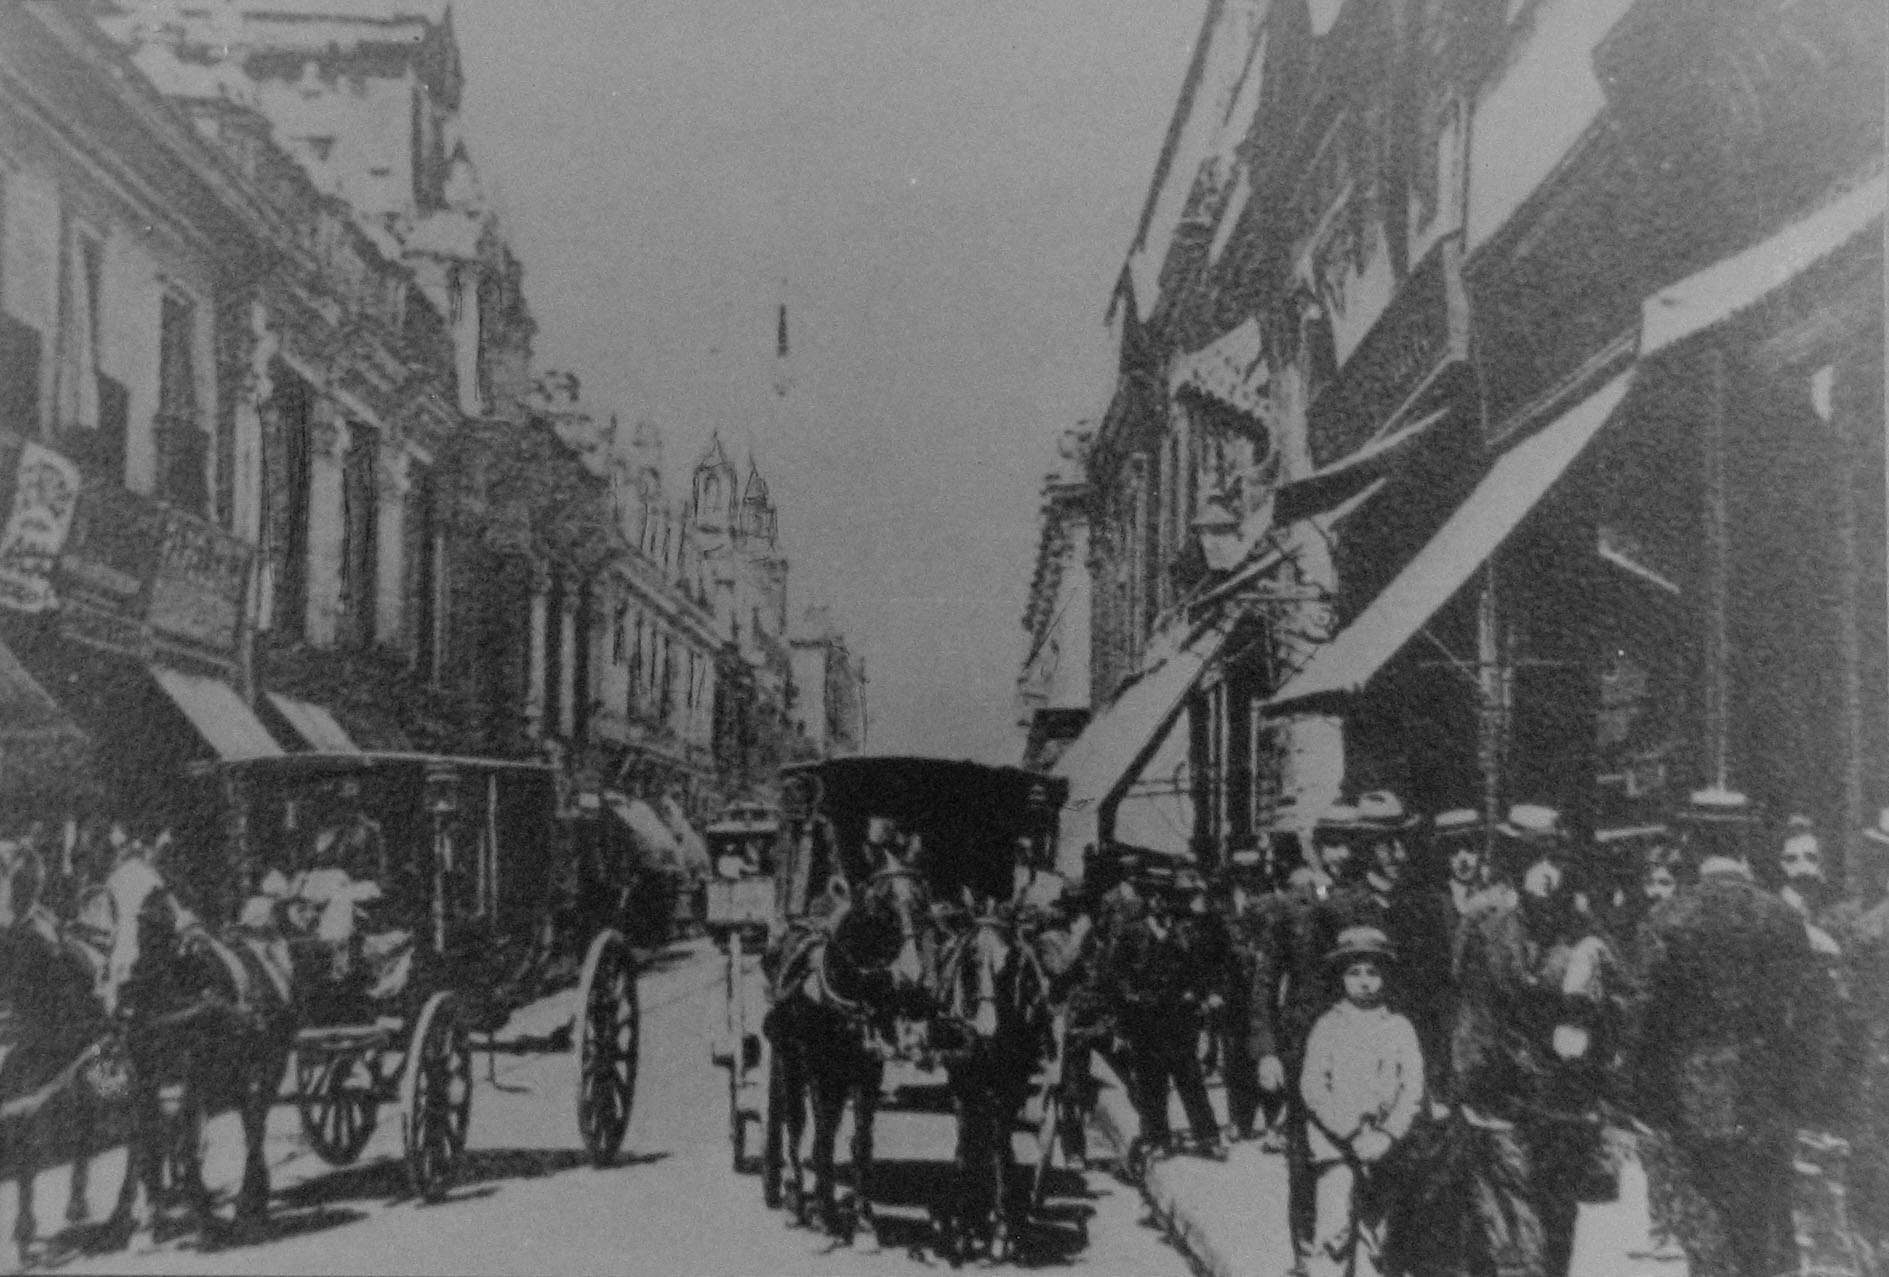 Enterreno - Fotos históricas de chile - fotos antiguas de Chile - Calle Ahumada de Santiago en 1900